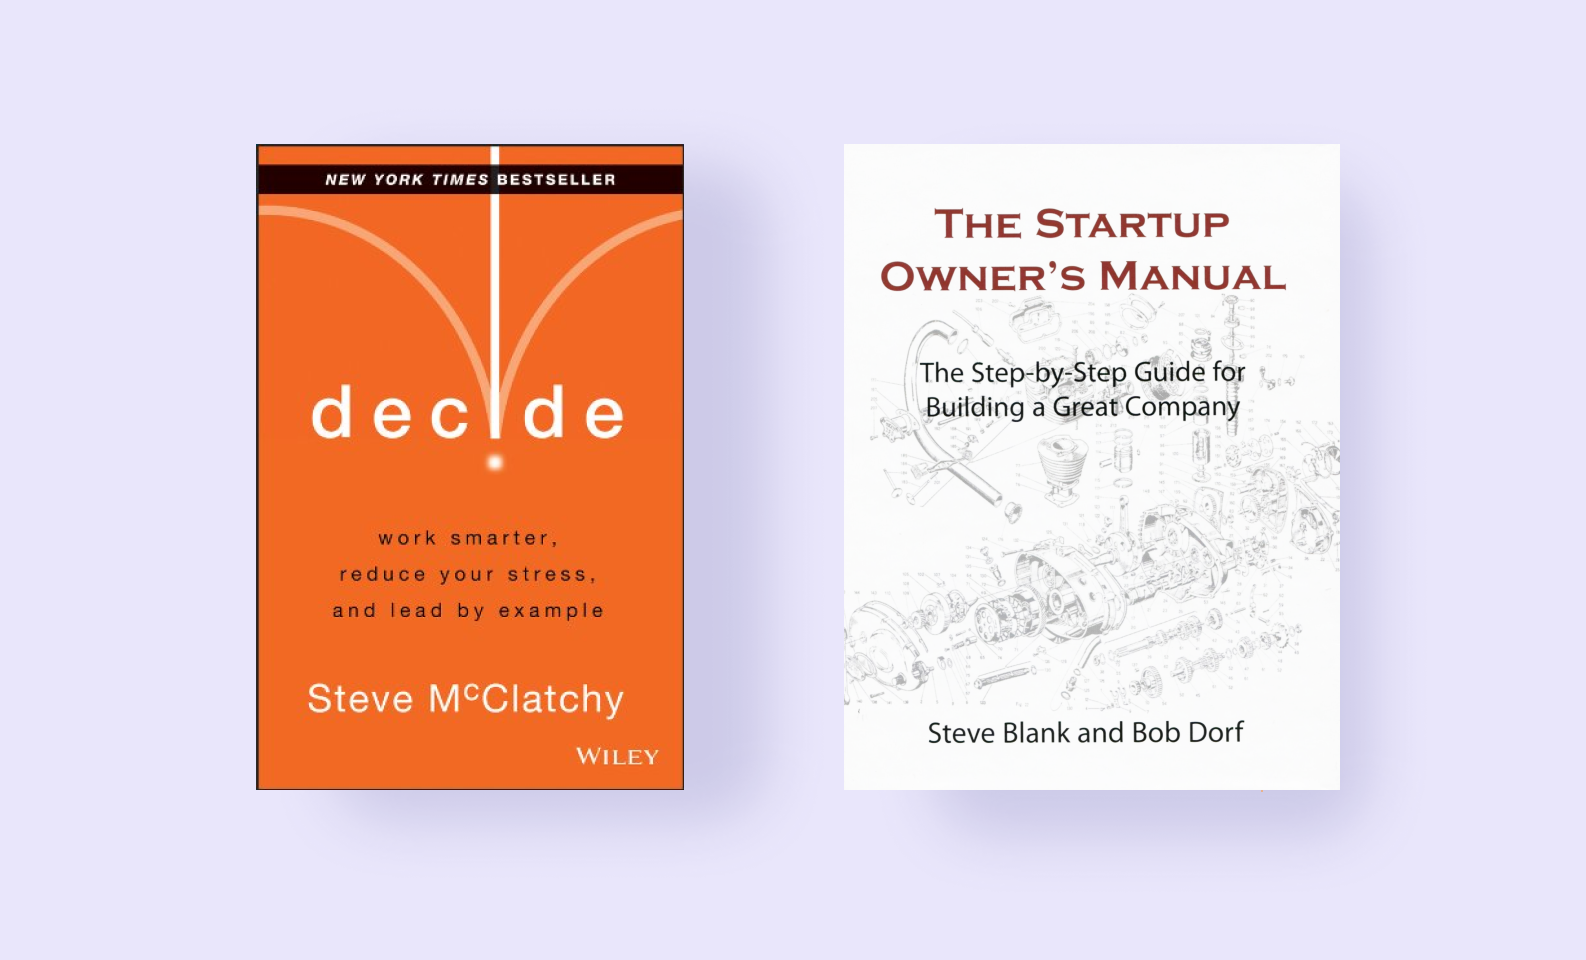 Decide and The Startup Owner's Manaual — best project management books